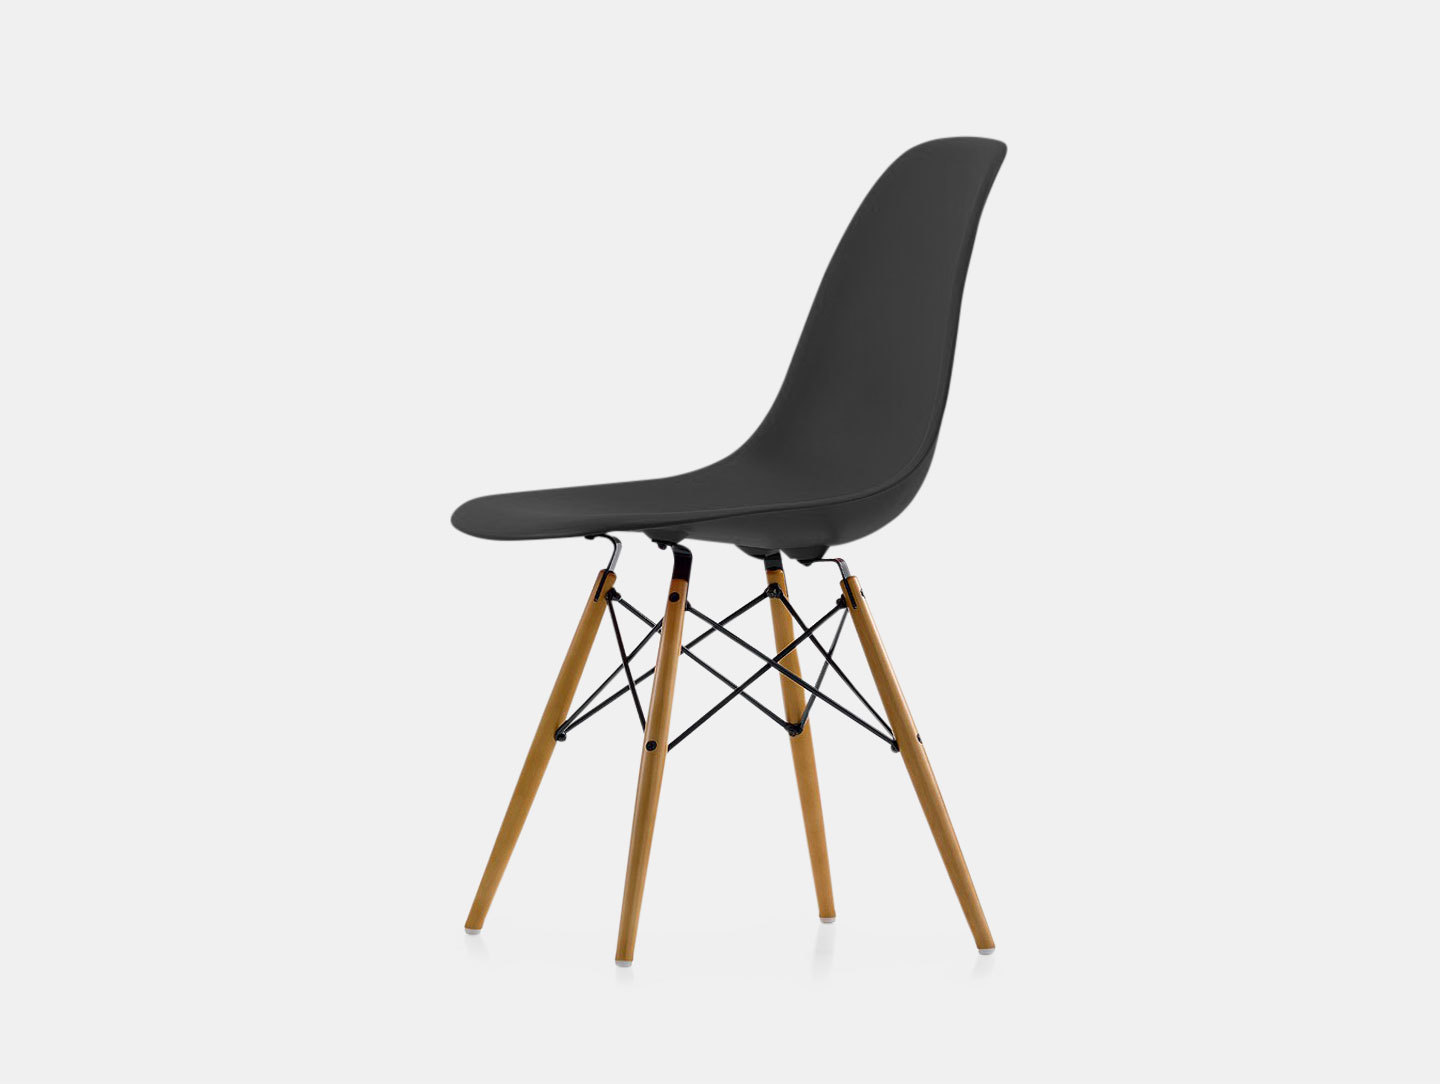 Eames DSW Plastic Side Chair image 5